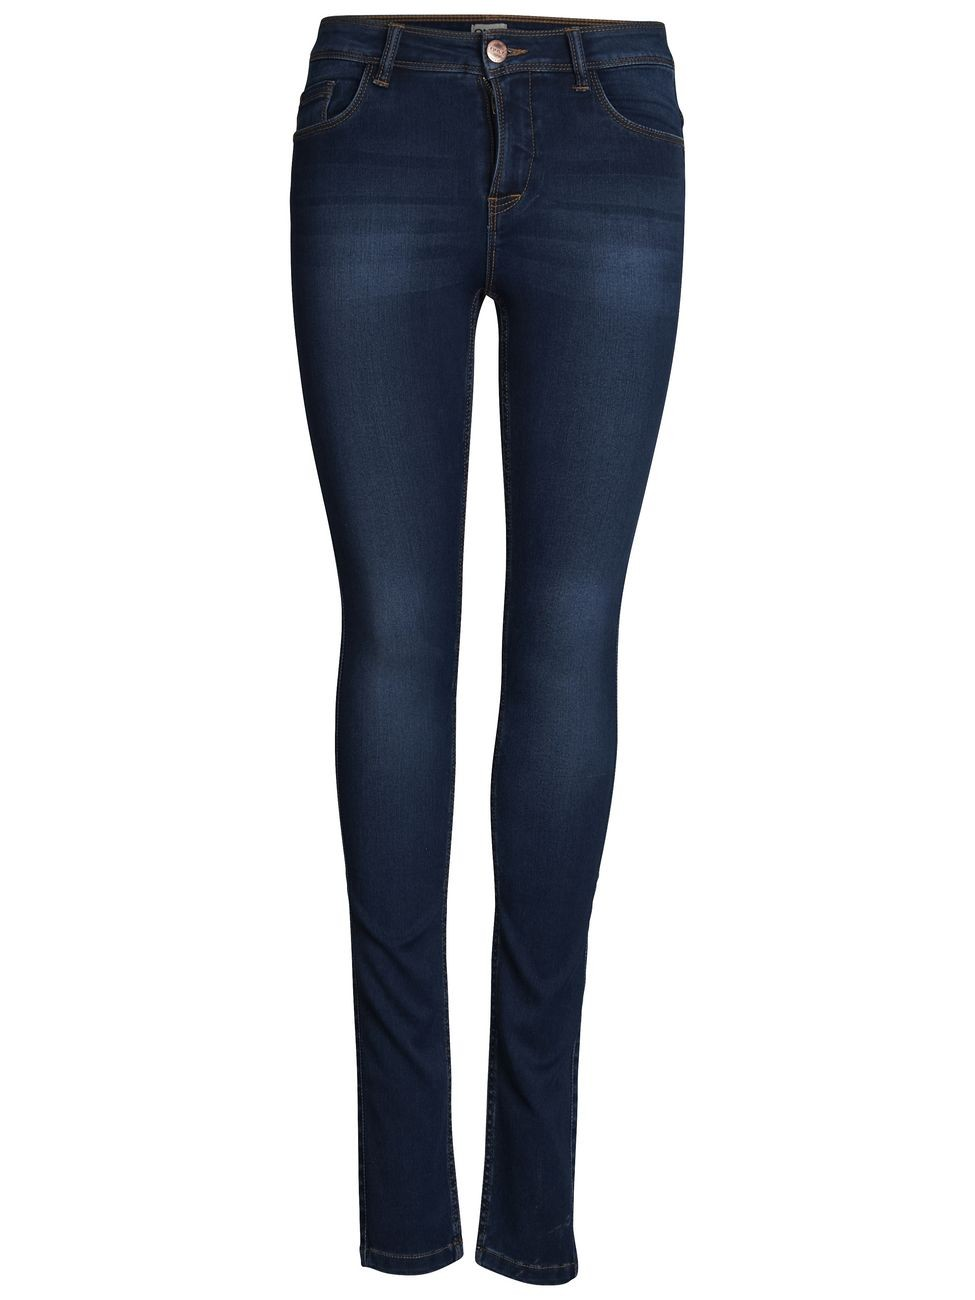 Only Damen Jeans Ultimate Skinny - Slim Fit - Dark Blue Denim